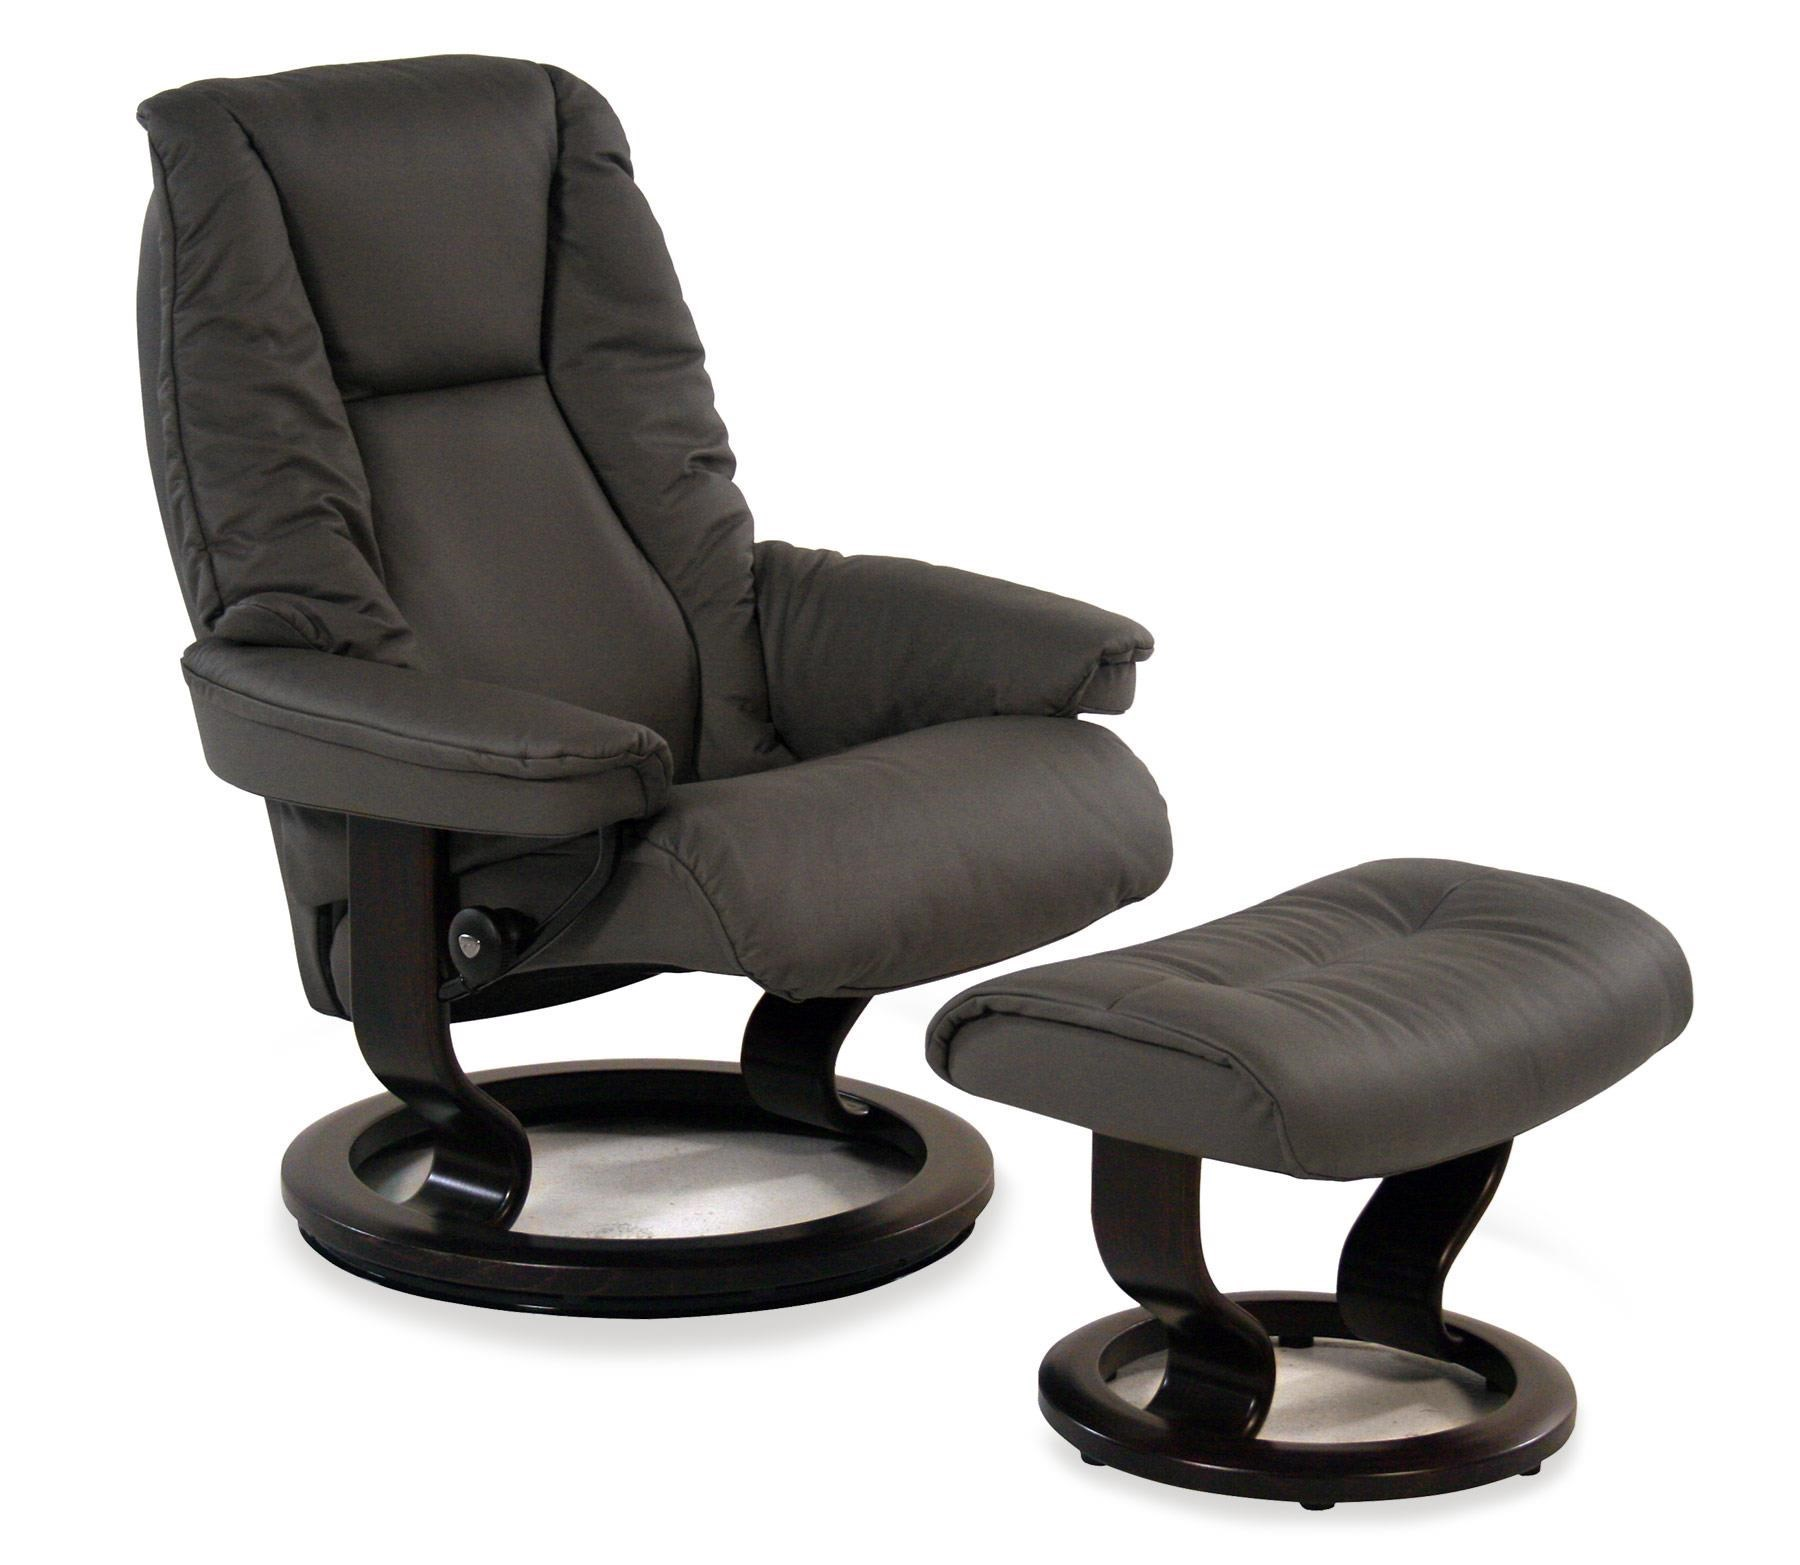 Classic Chair Live Medium Reclining Chair Ottoman Paloma Metal Grey W Classic Base By Stressless By Ekornes At Rotmans